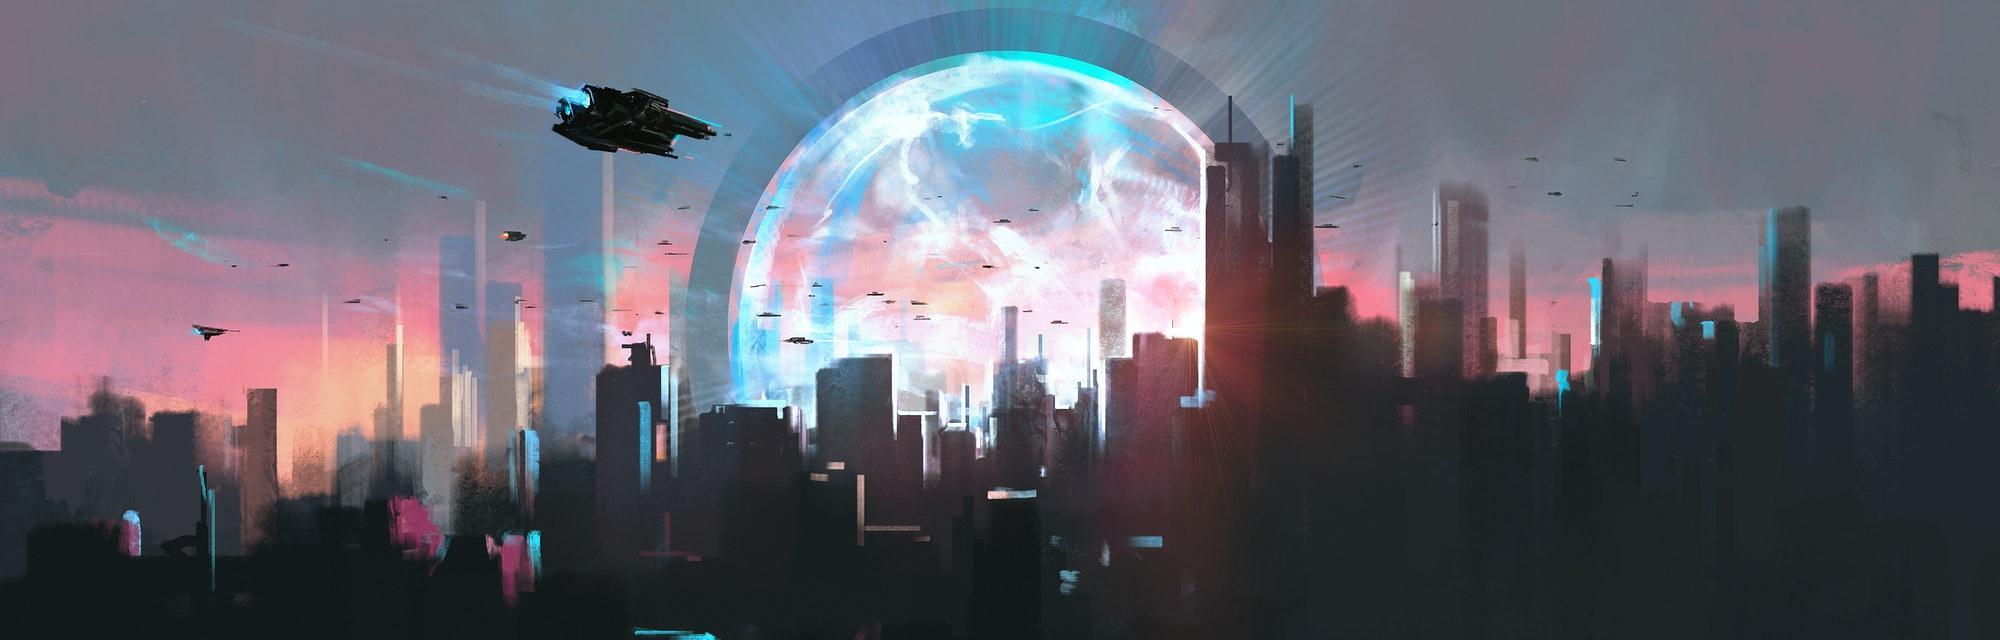 Space-time shuttle device in the city, 3D illustration